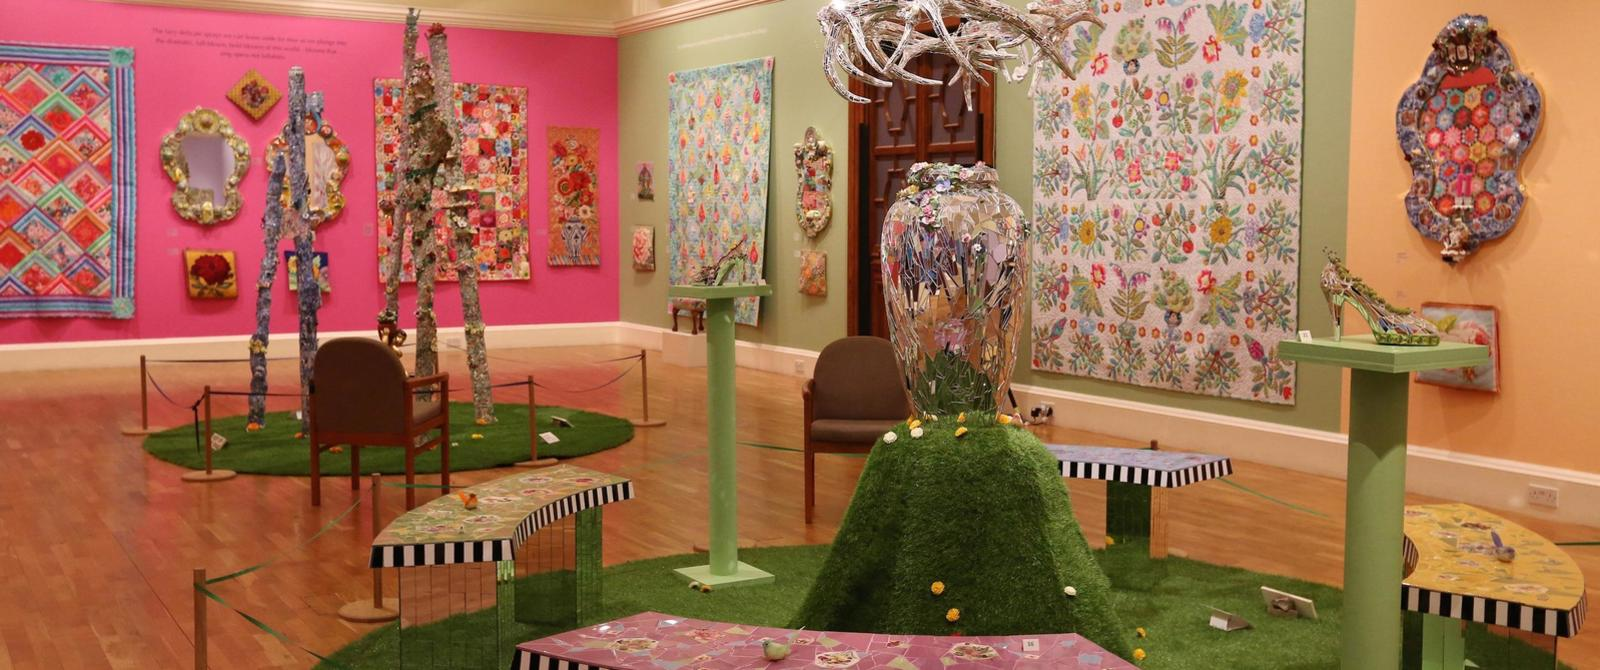 Image: A Celebration of Flowers exhibition